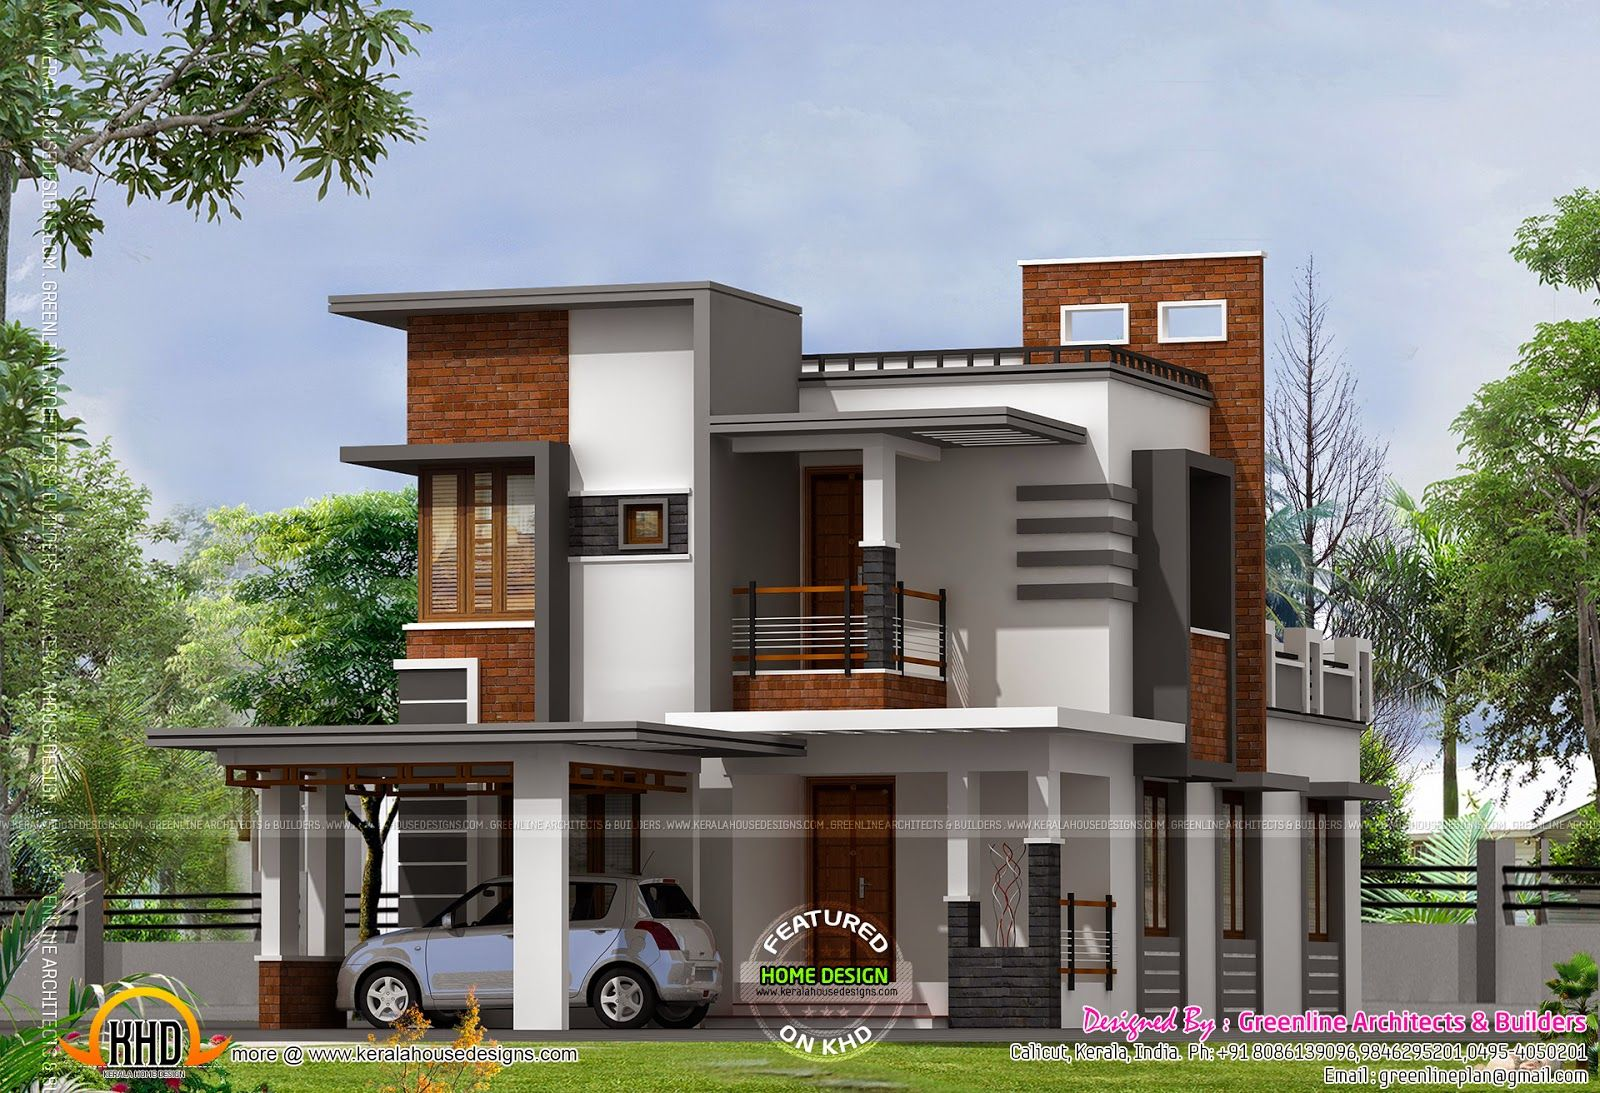 Low cost contemporary house house elevation indian pinterest contemporary house elevation - Modern house designs ...